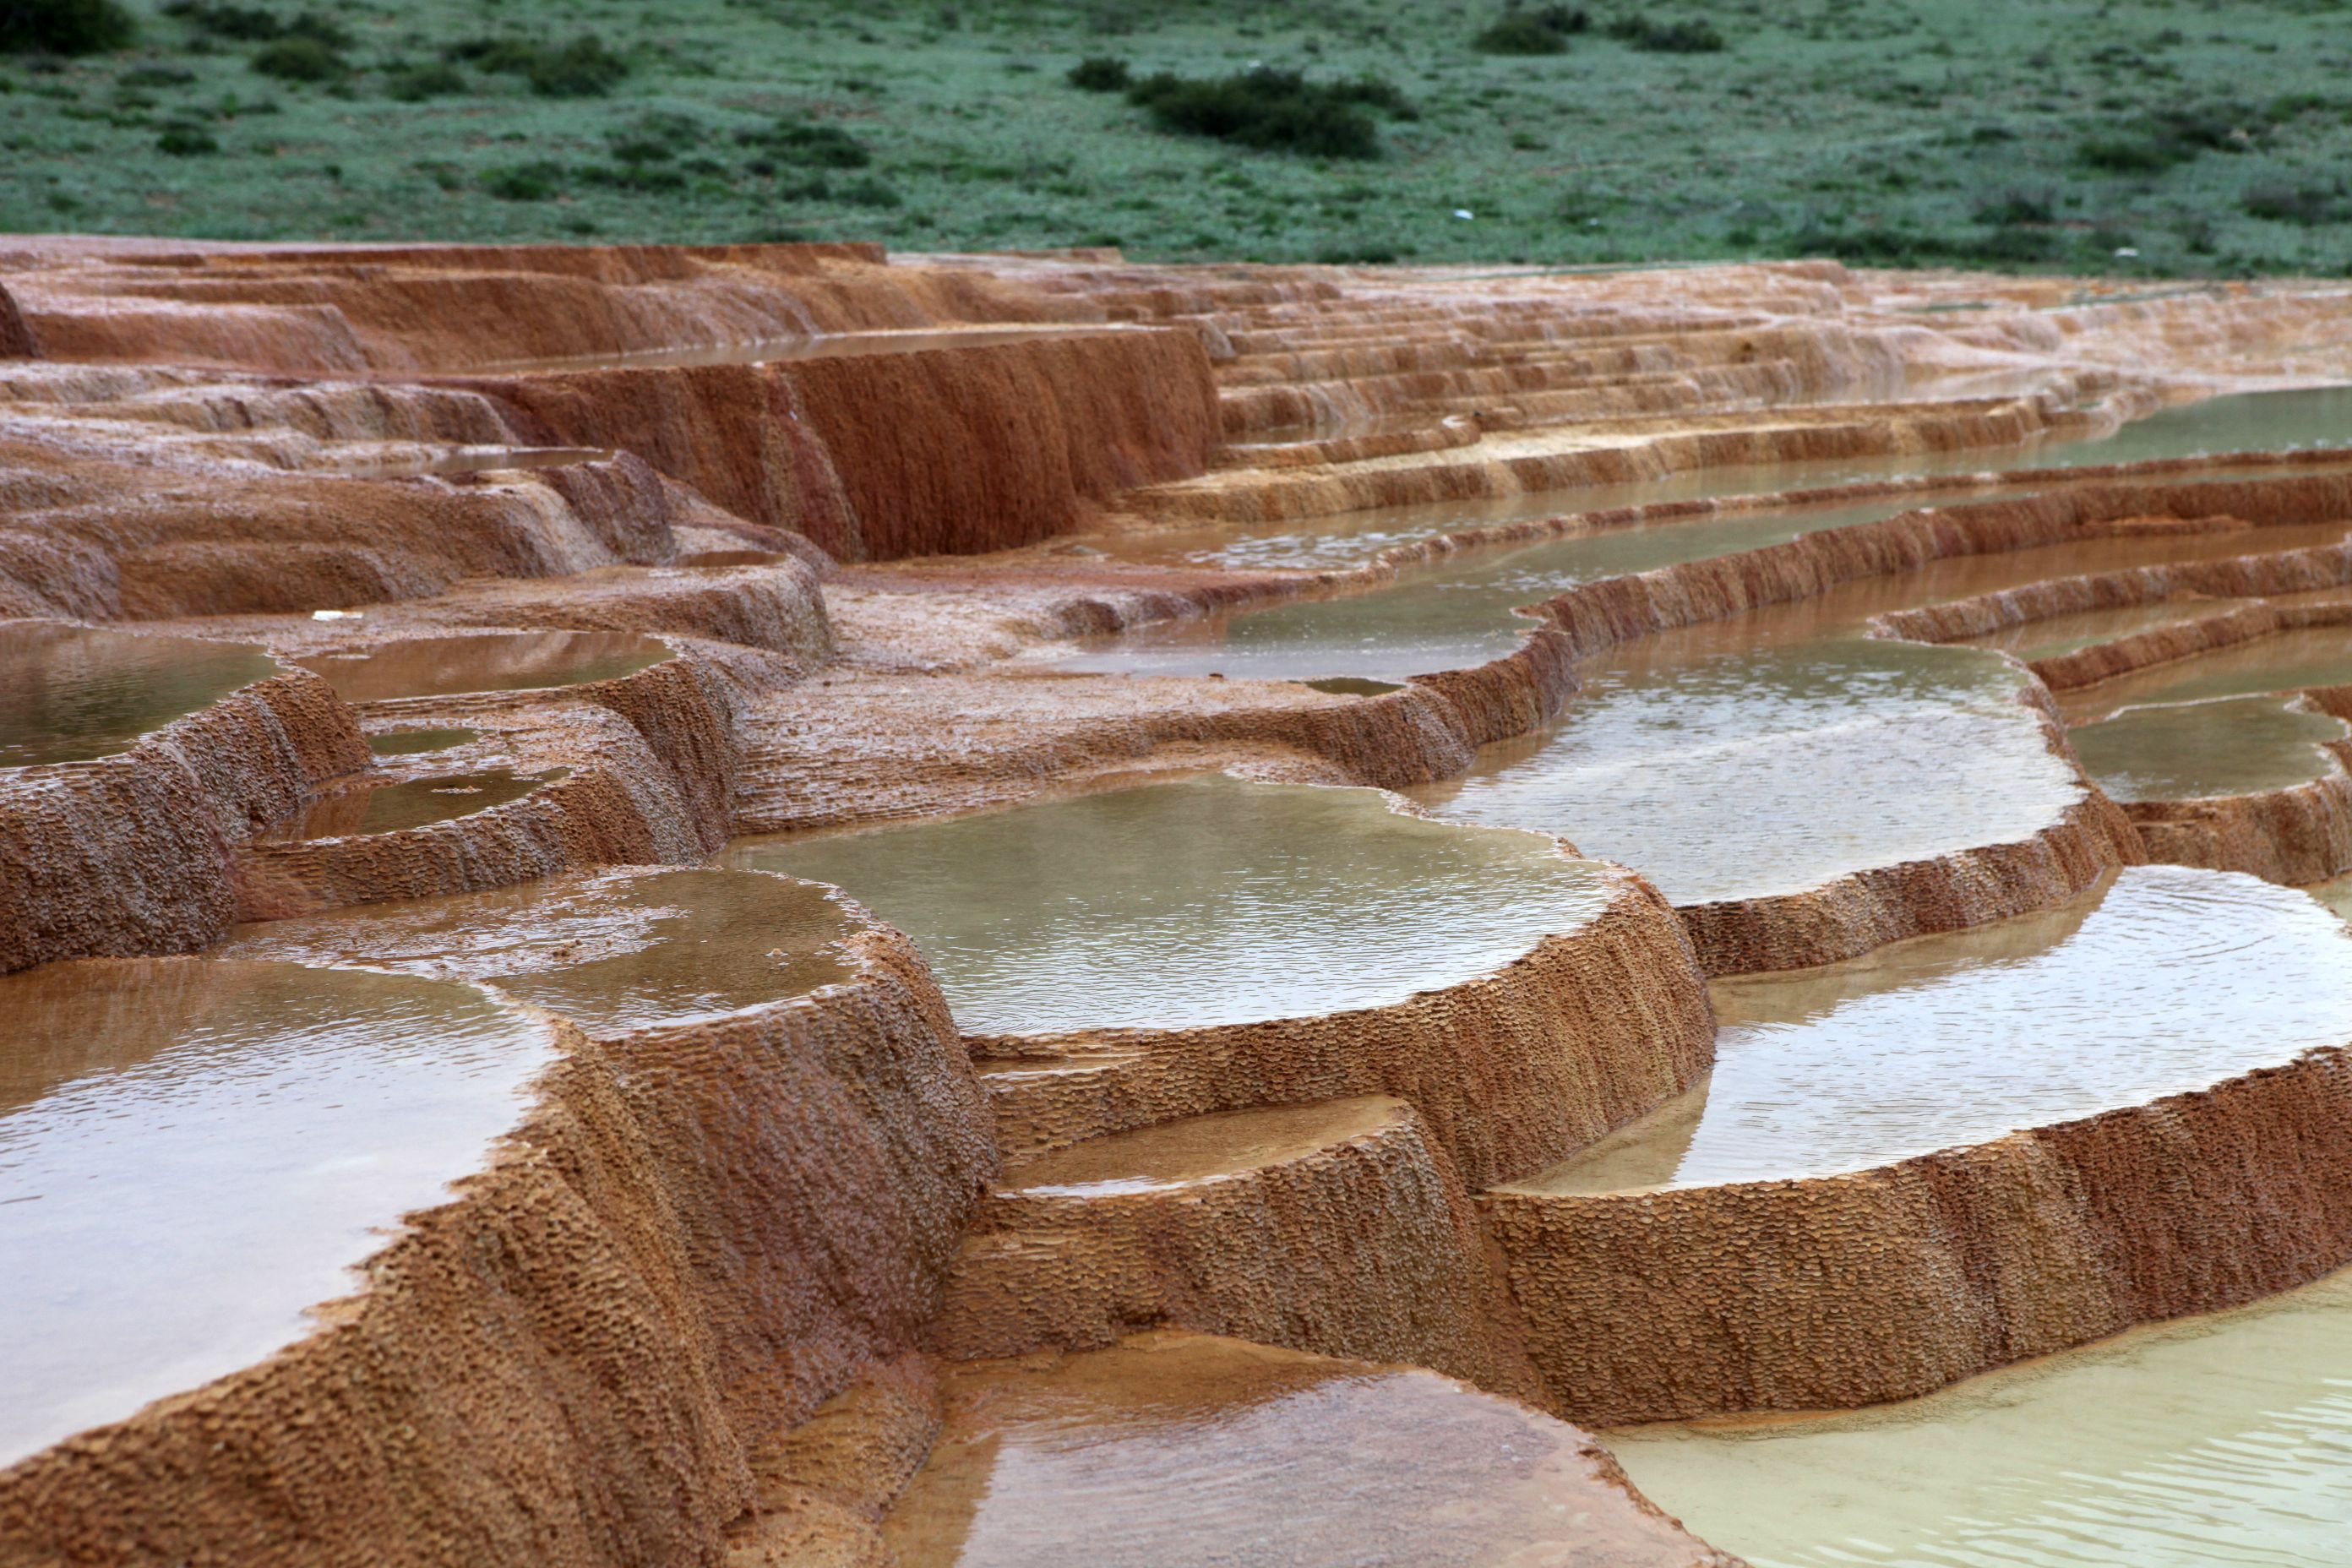 Badab-e Surt hot springs